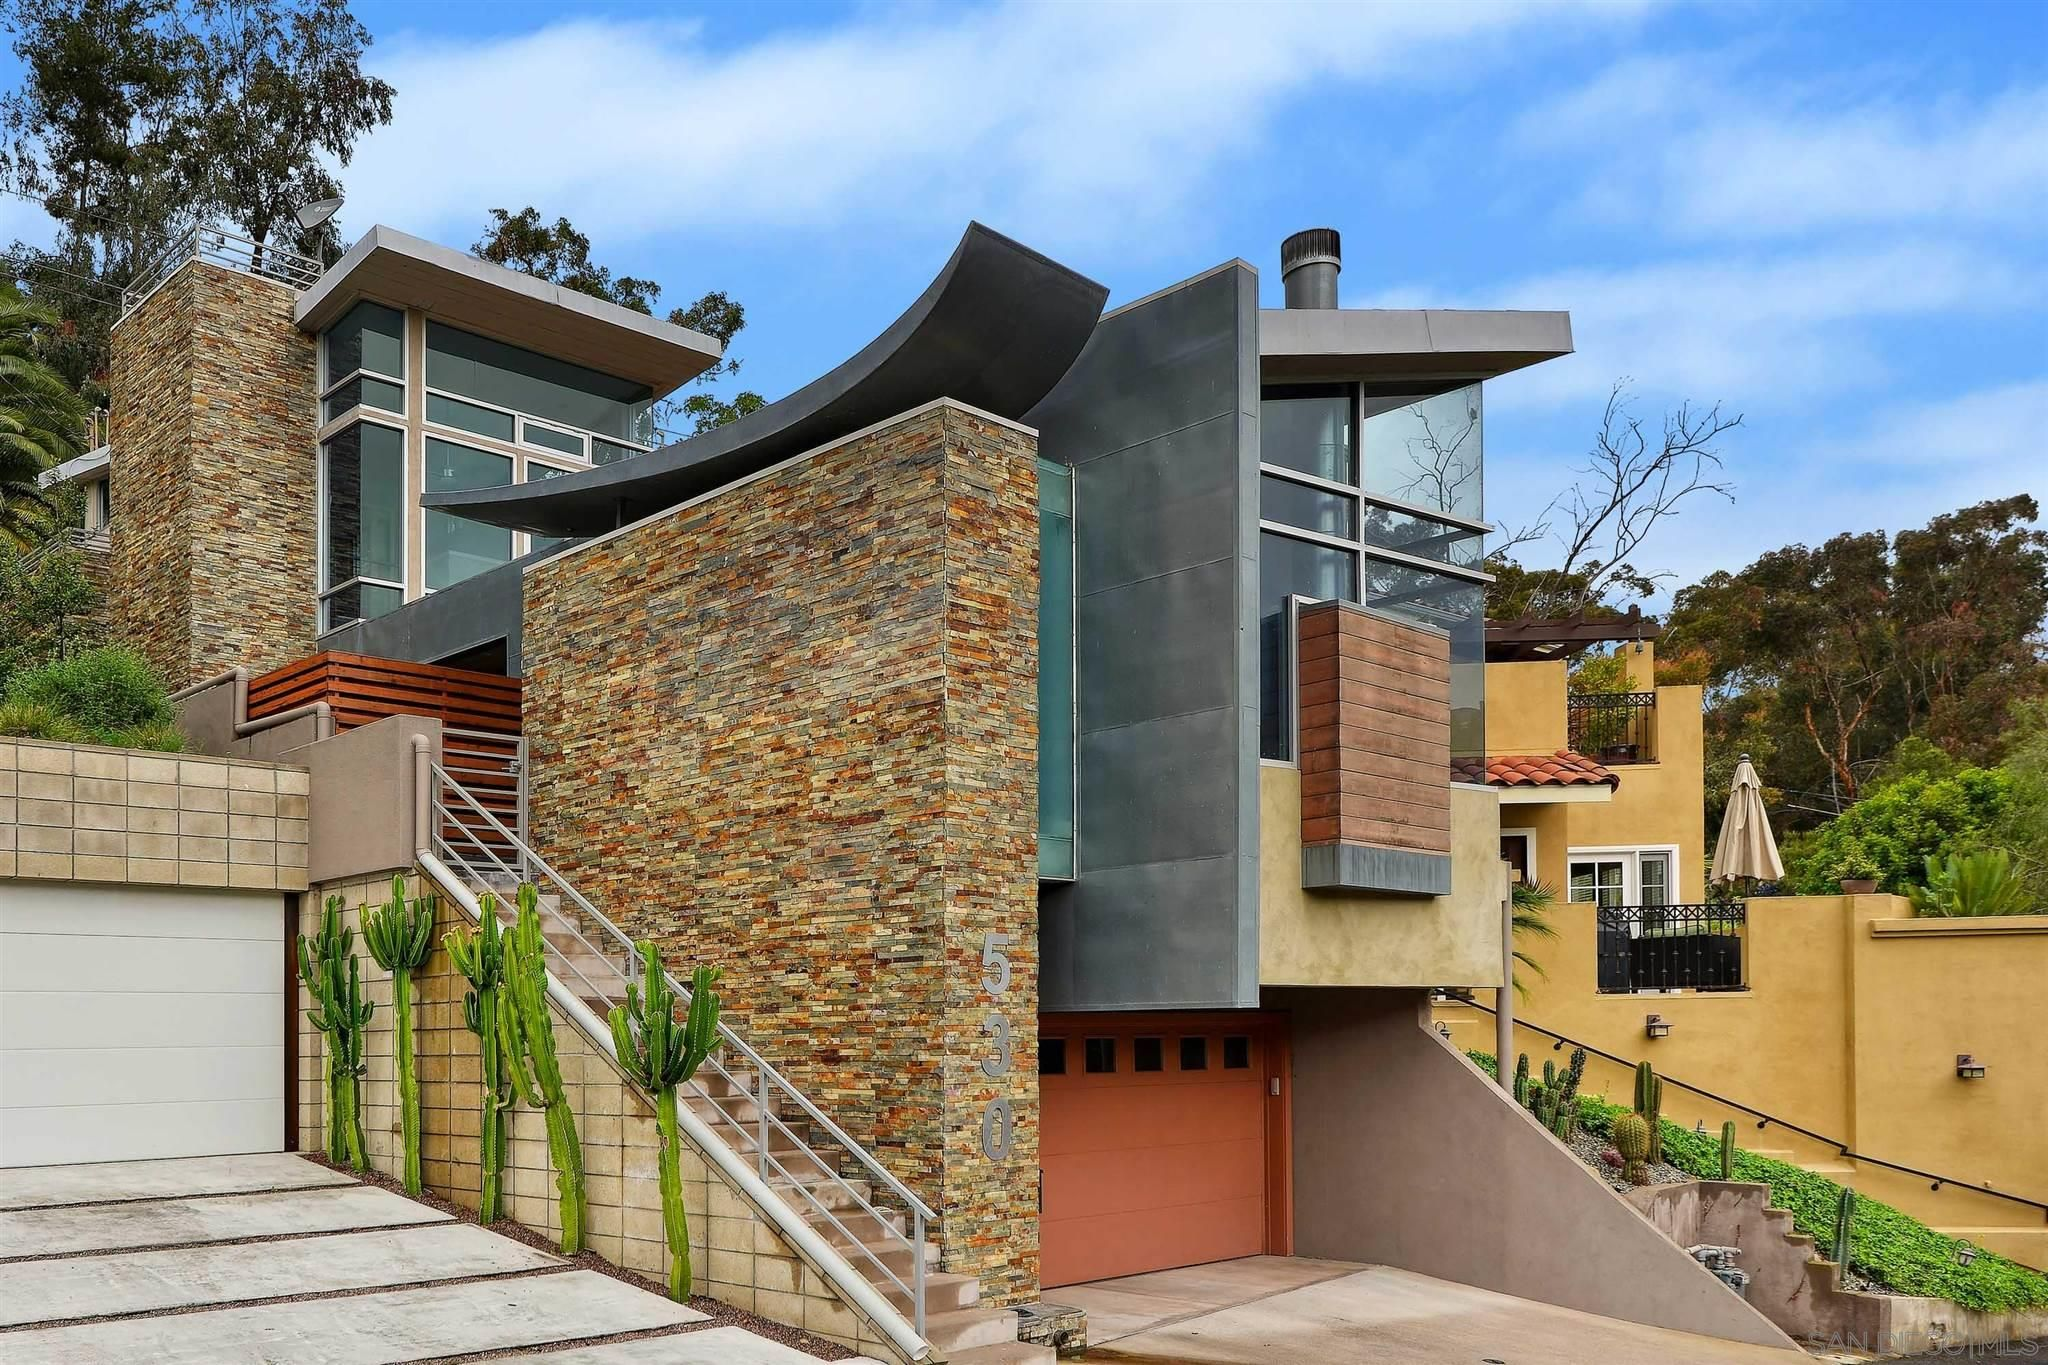 Main Photo: MISSION HILLS House for sale : 2 bedrooms : 530 Otsego Dr in San Diego